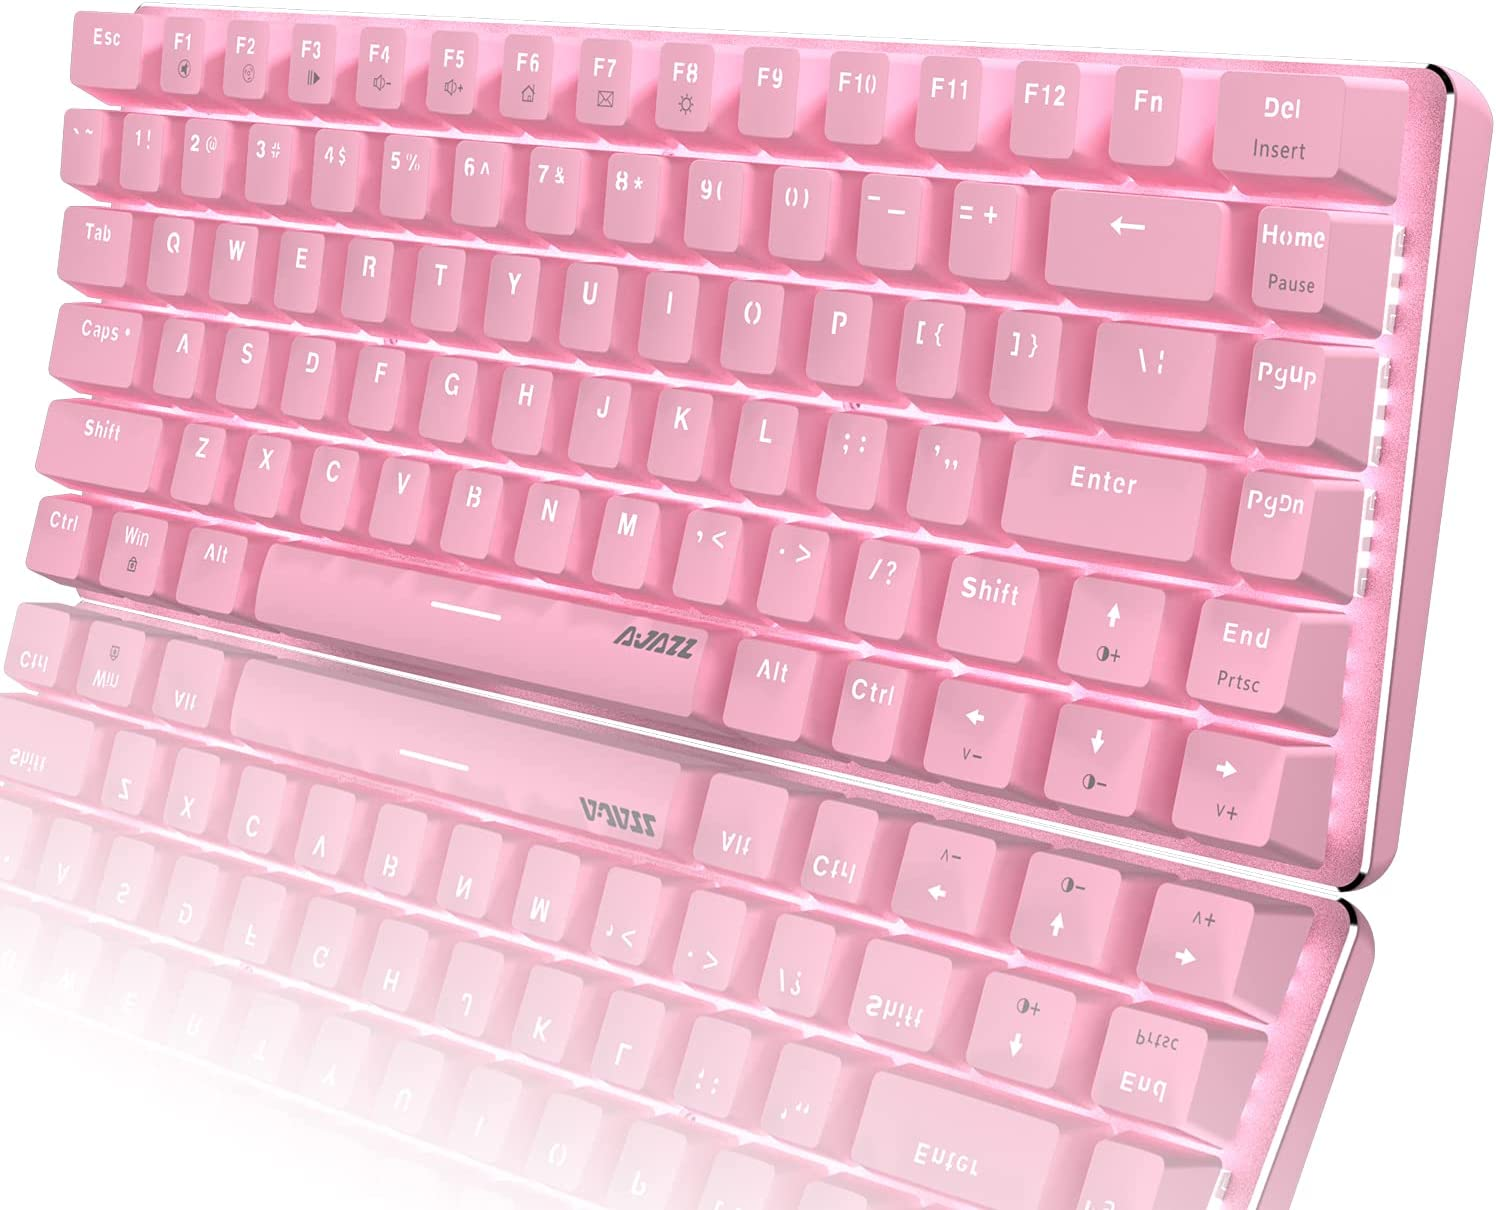 Pink Mechaincal Gaming Keyboard and Spring new work Blue Mouse Pad Switche Combo Discount is also underway